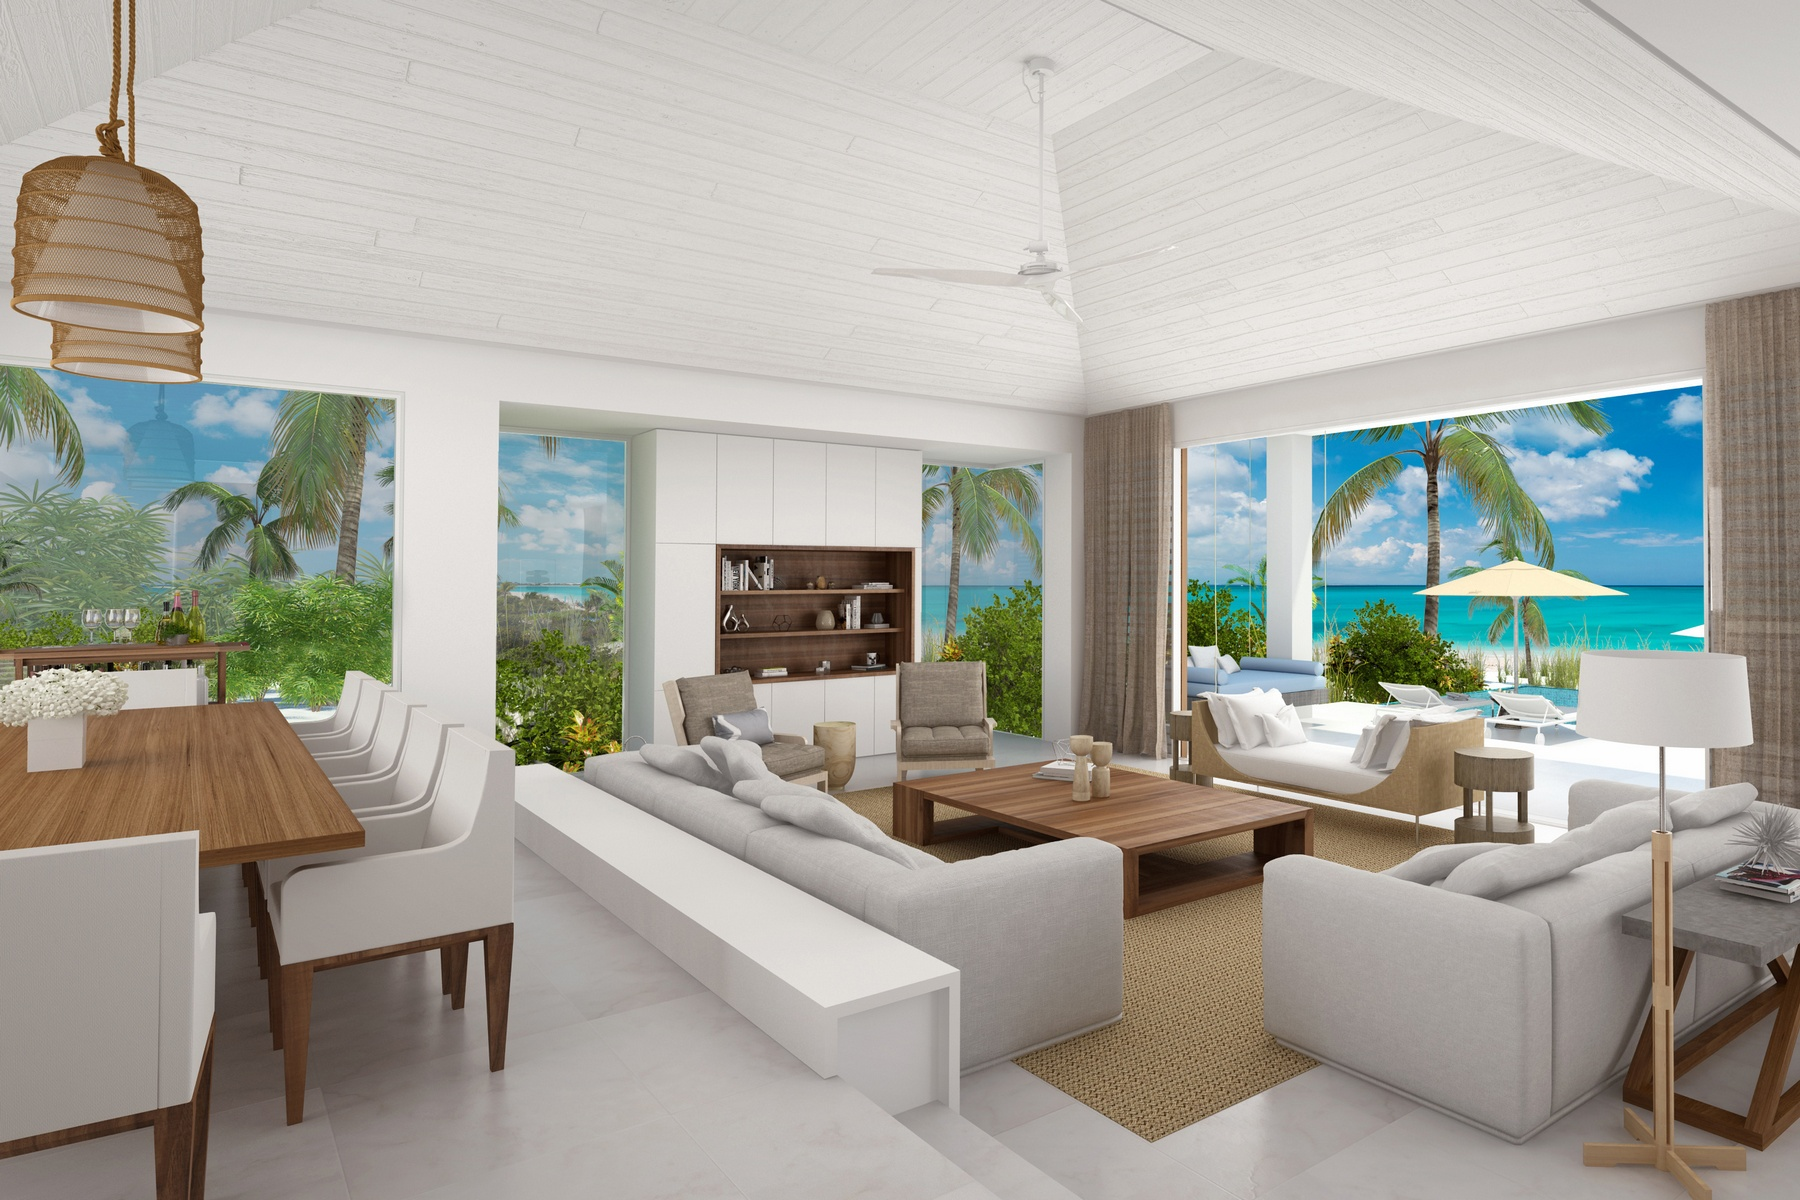 Additional photo for property listing at BEACH ENCLAVE GRACE BAY Design A Beachfront Grace Bay, Провиденсьялес TCI Теркс И Кайкос